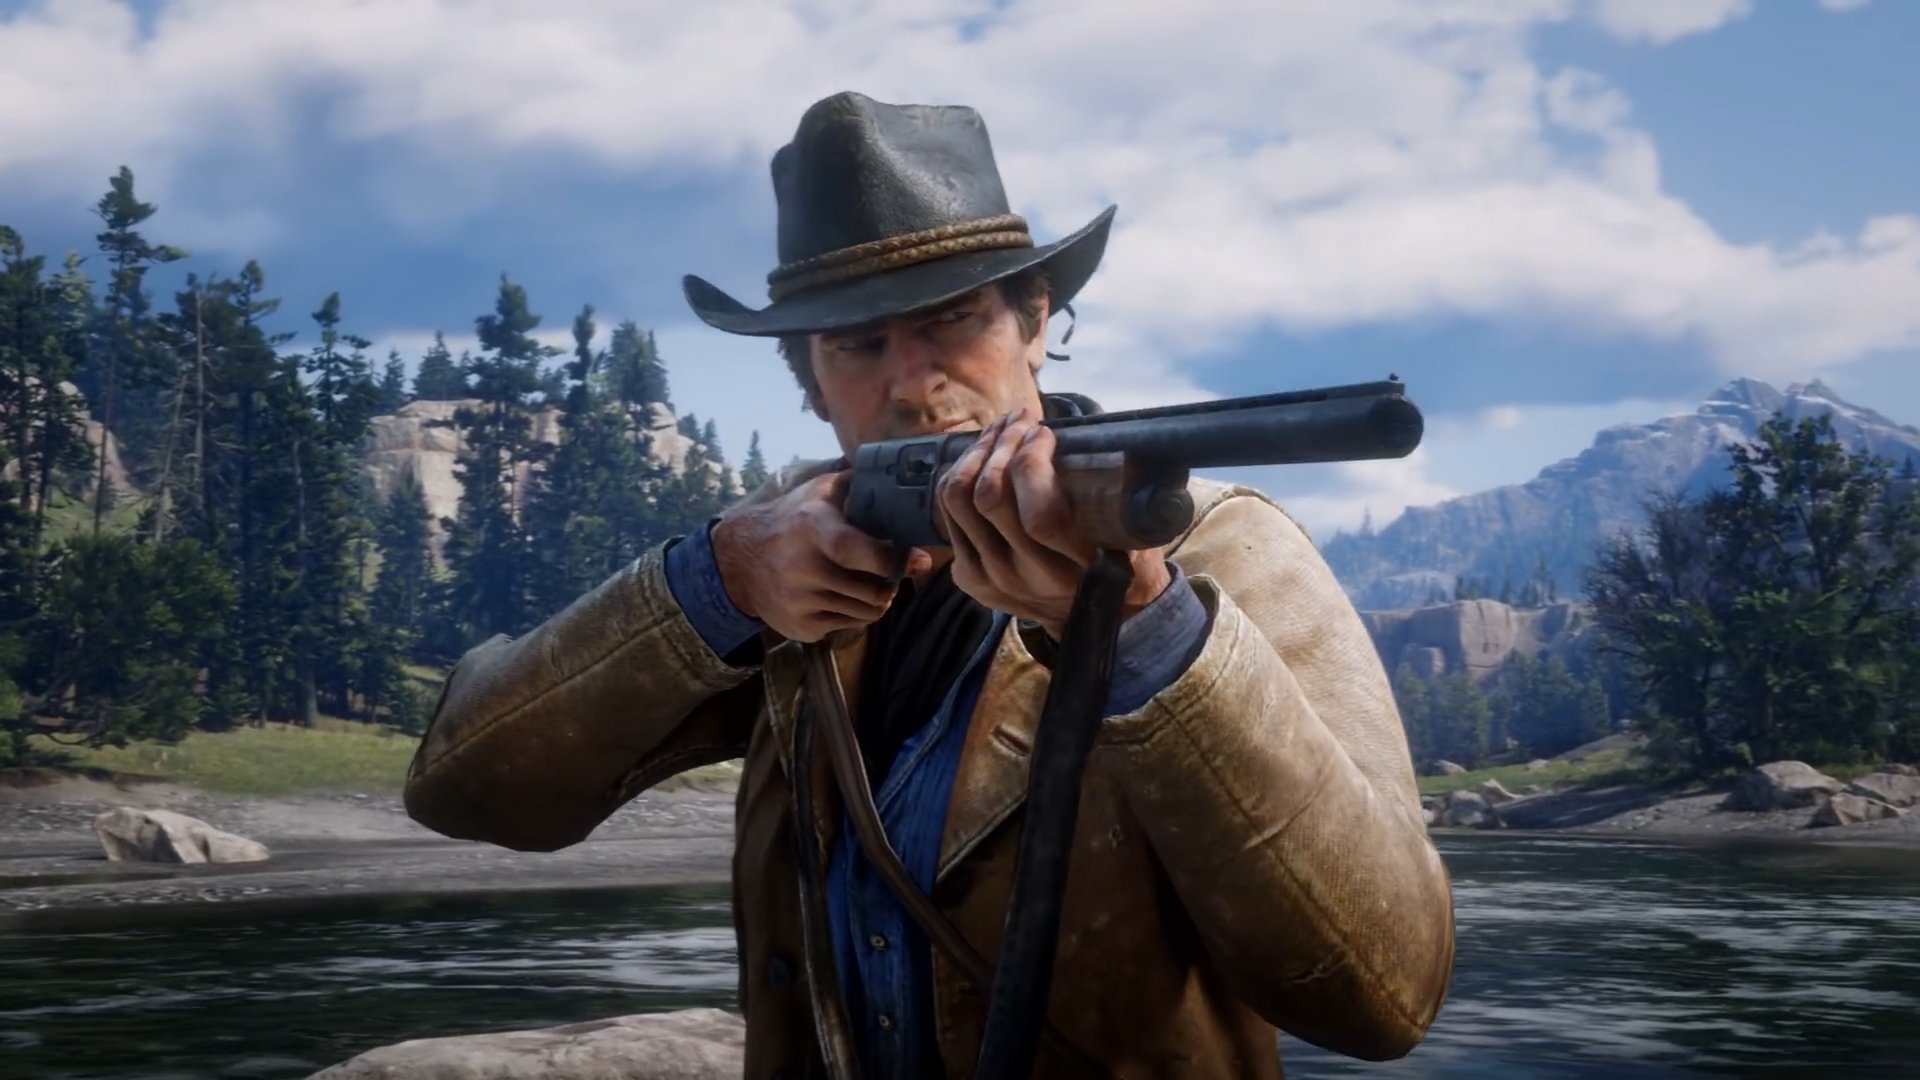 Rockstar reveals gameplay from their upcoming Old West open-world sequel: Red Dead Redemption 2. https://t.co/eE5WUzzFBa